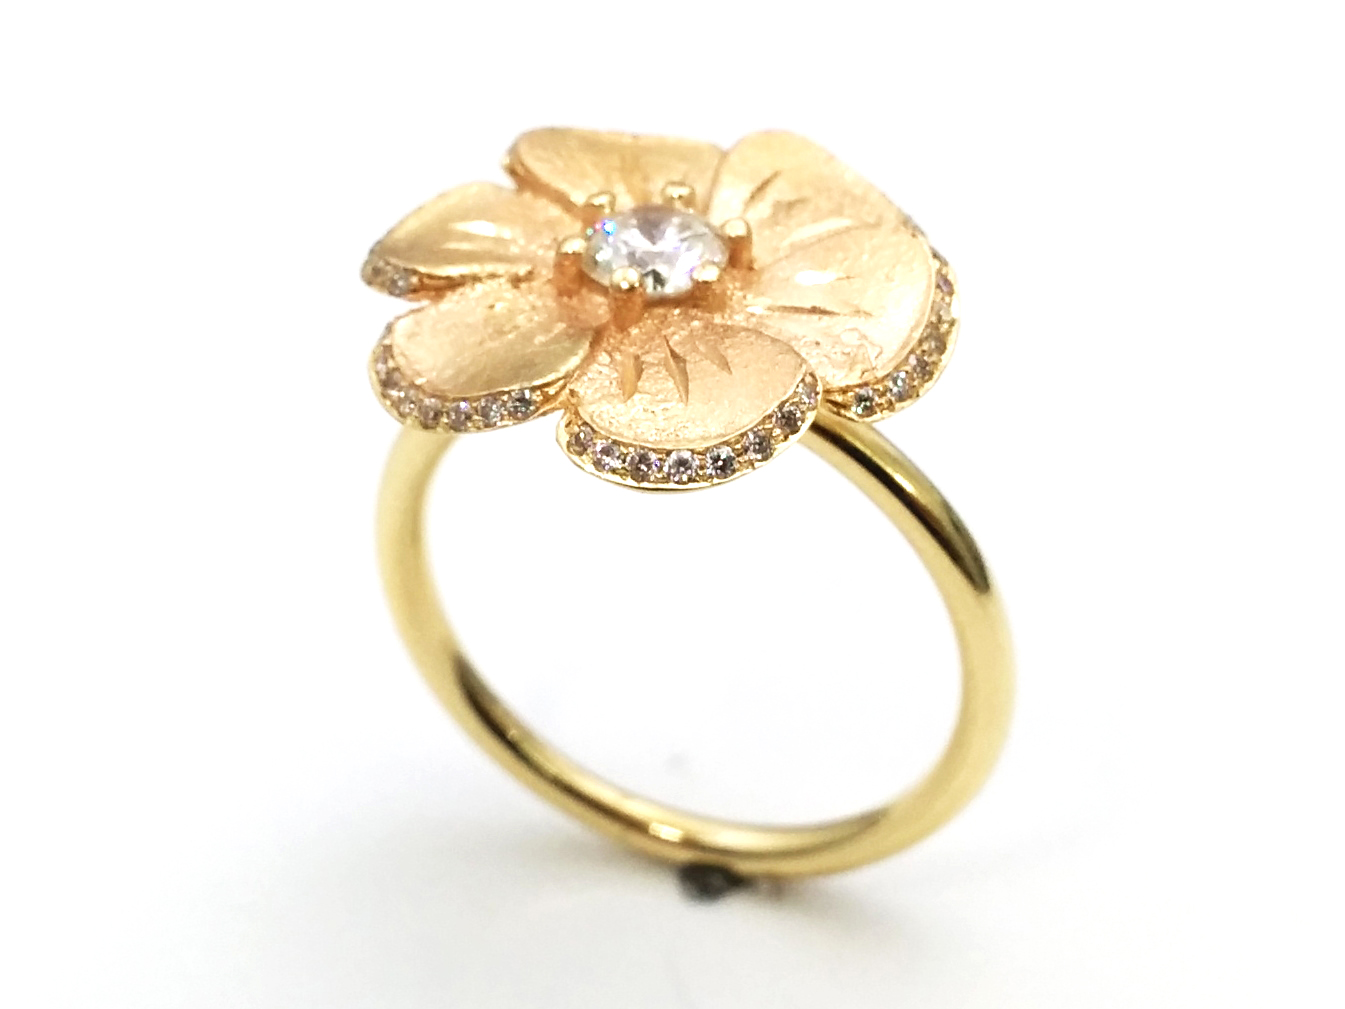 Hand Made Rustic Floral Pave Diamond Engagement Ring in Yellow Gold